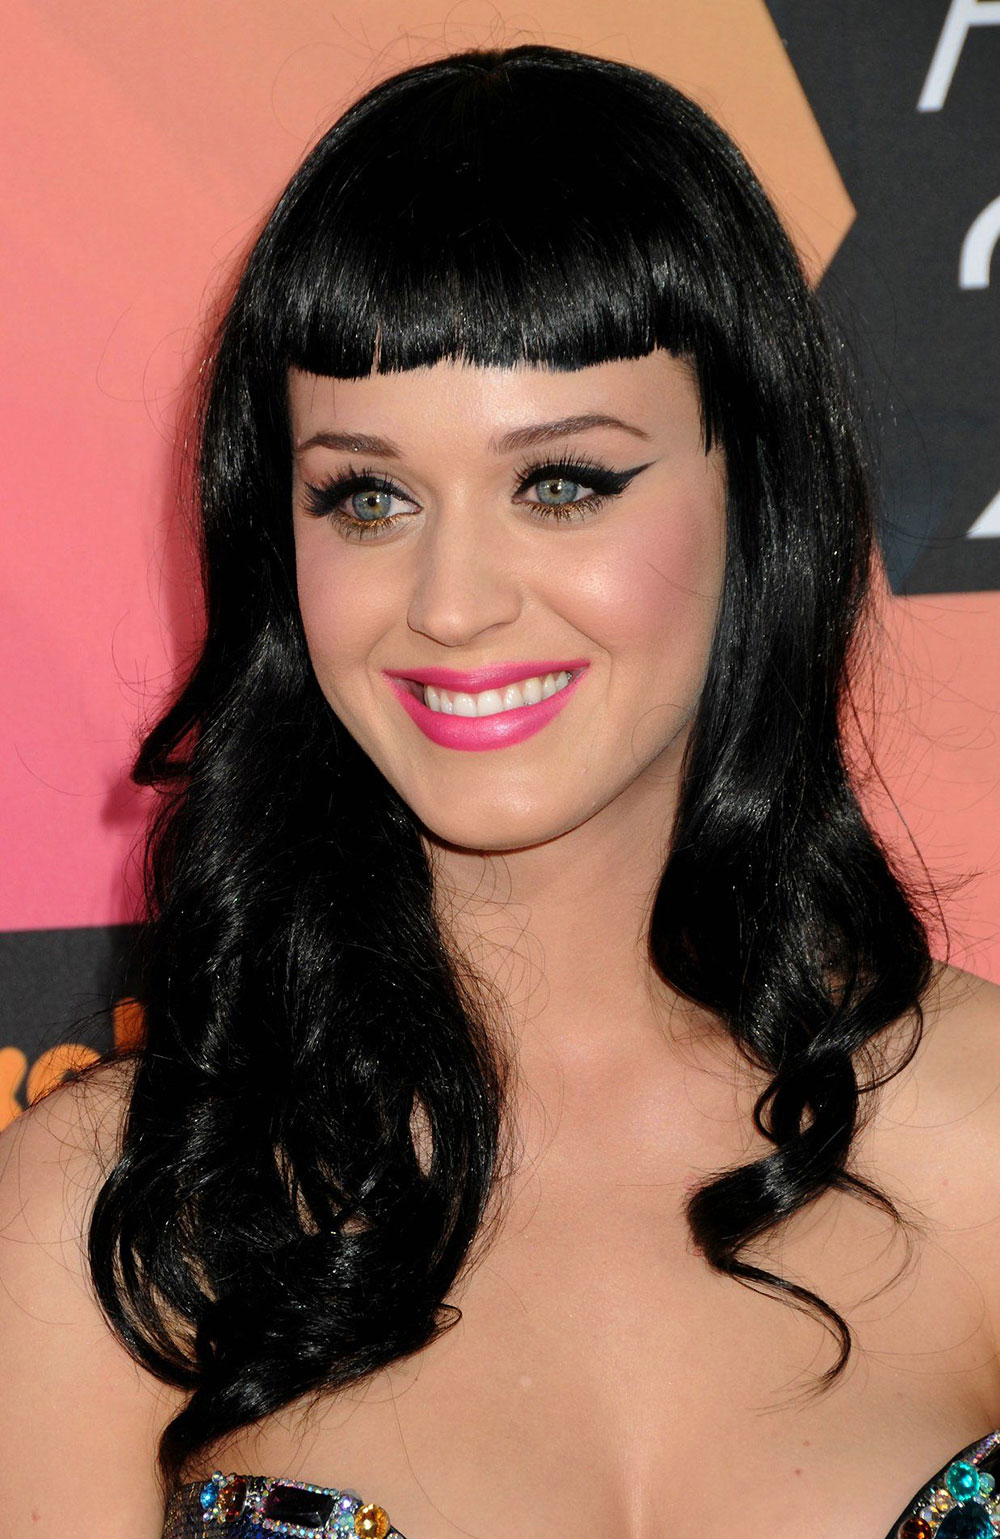 Katy Perry makeup 2010 Kids Choice Awards